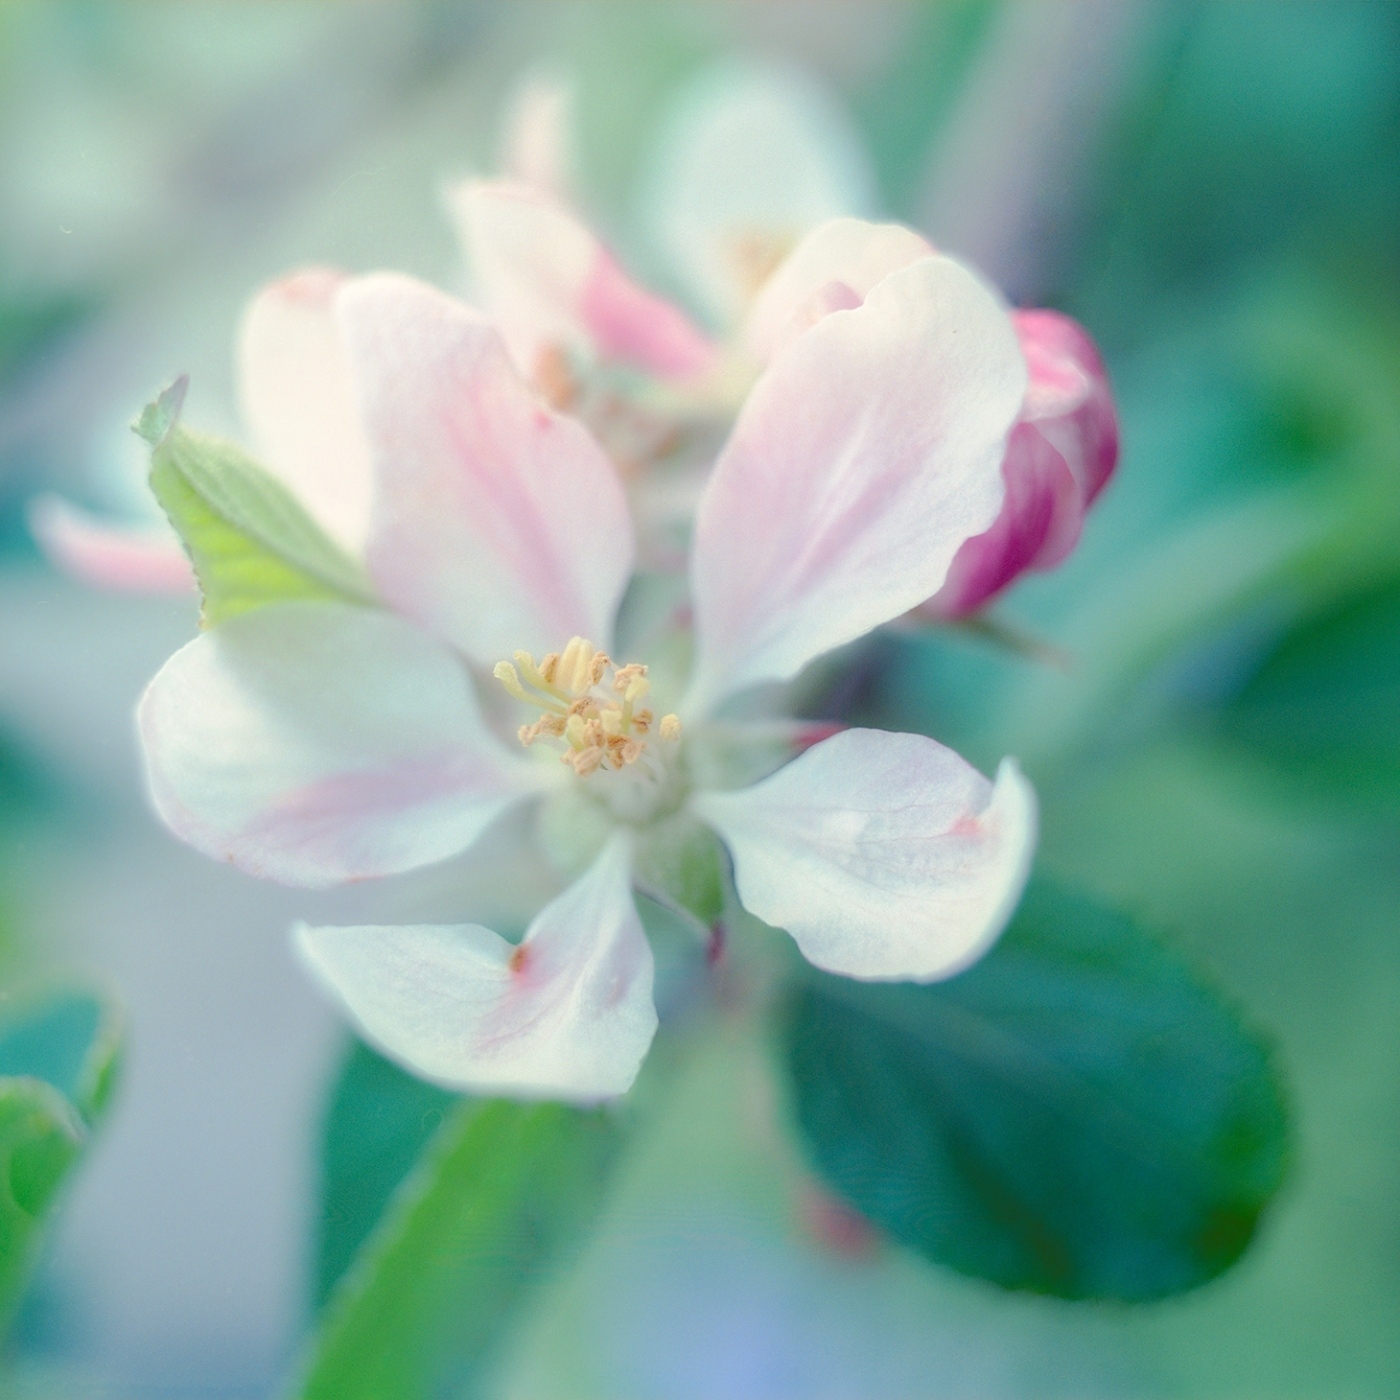 Apple blossom in my garden - an image taken on a old Mamiya c330f using a 55mm f4.5 lens on Pro-400H film. There's no EXIF data as I had no pencil and paper.